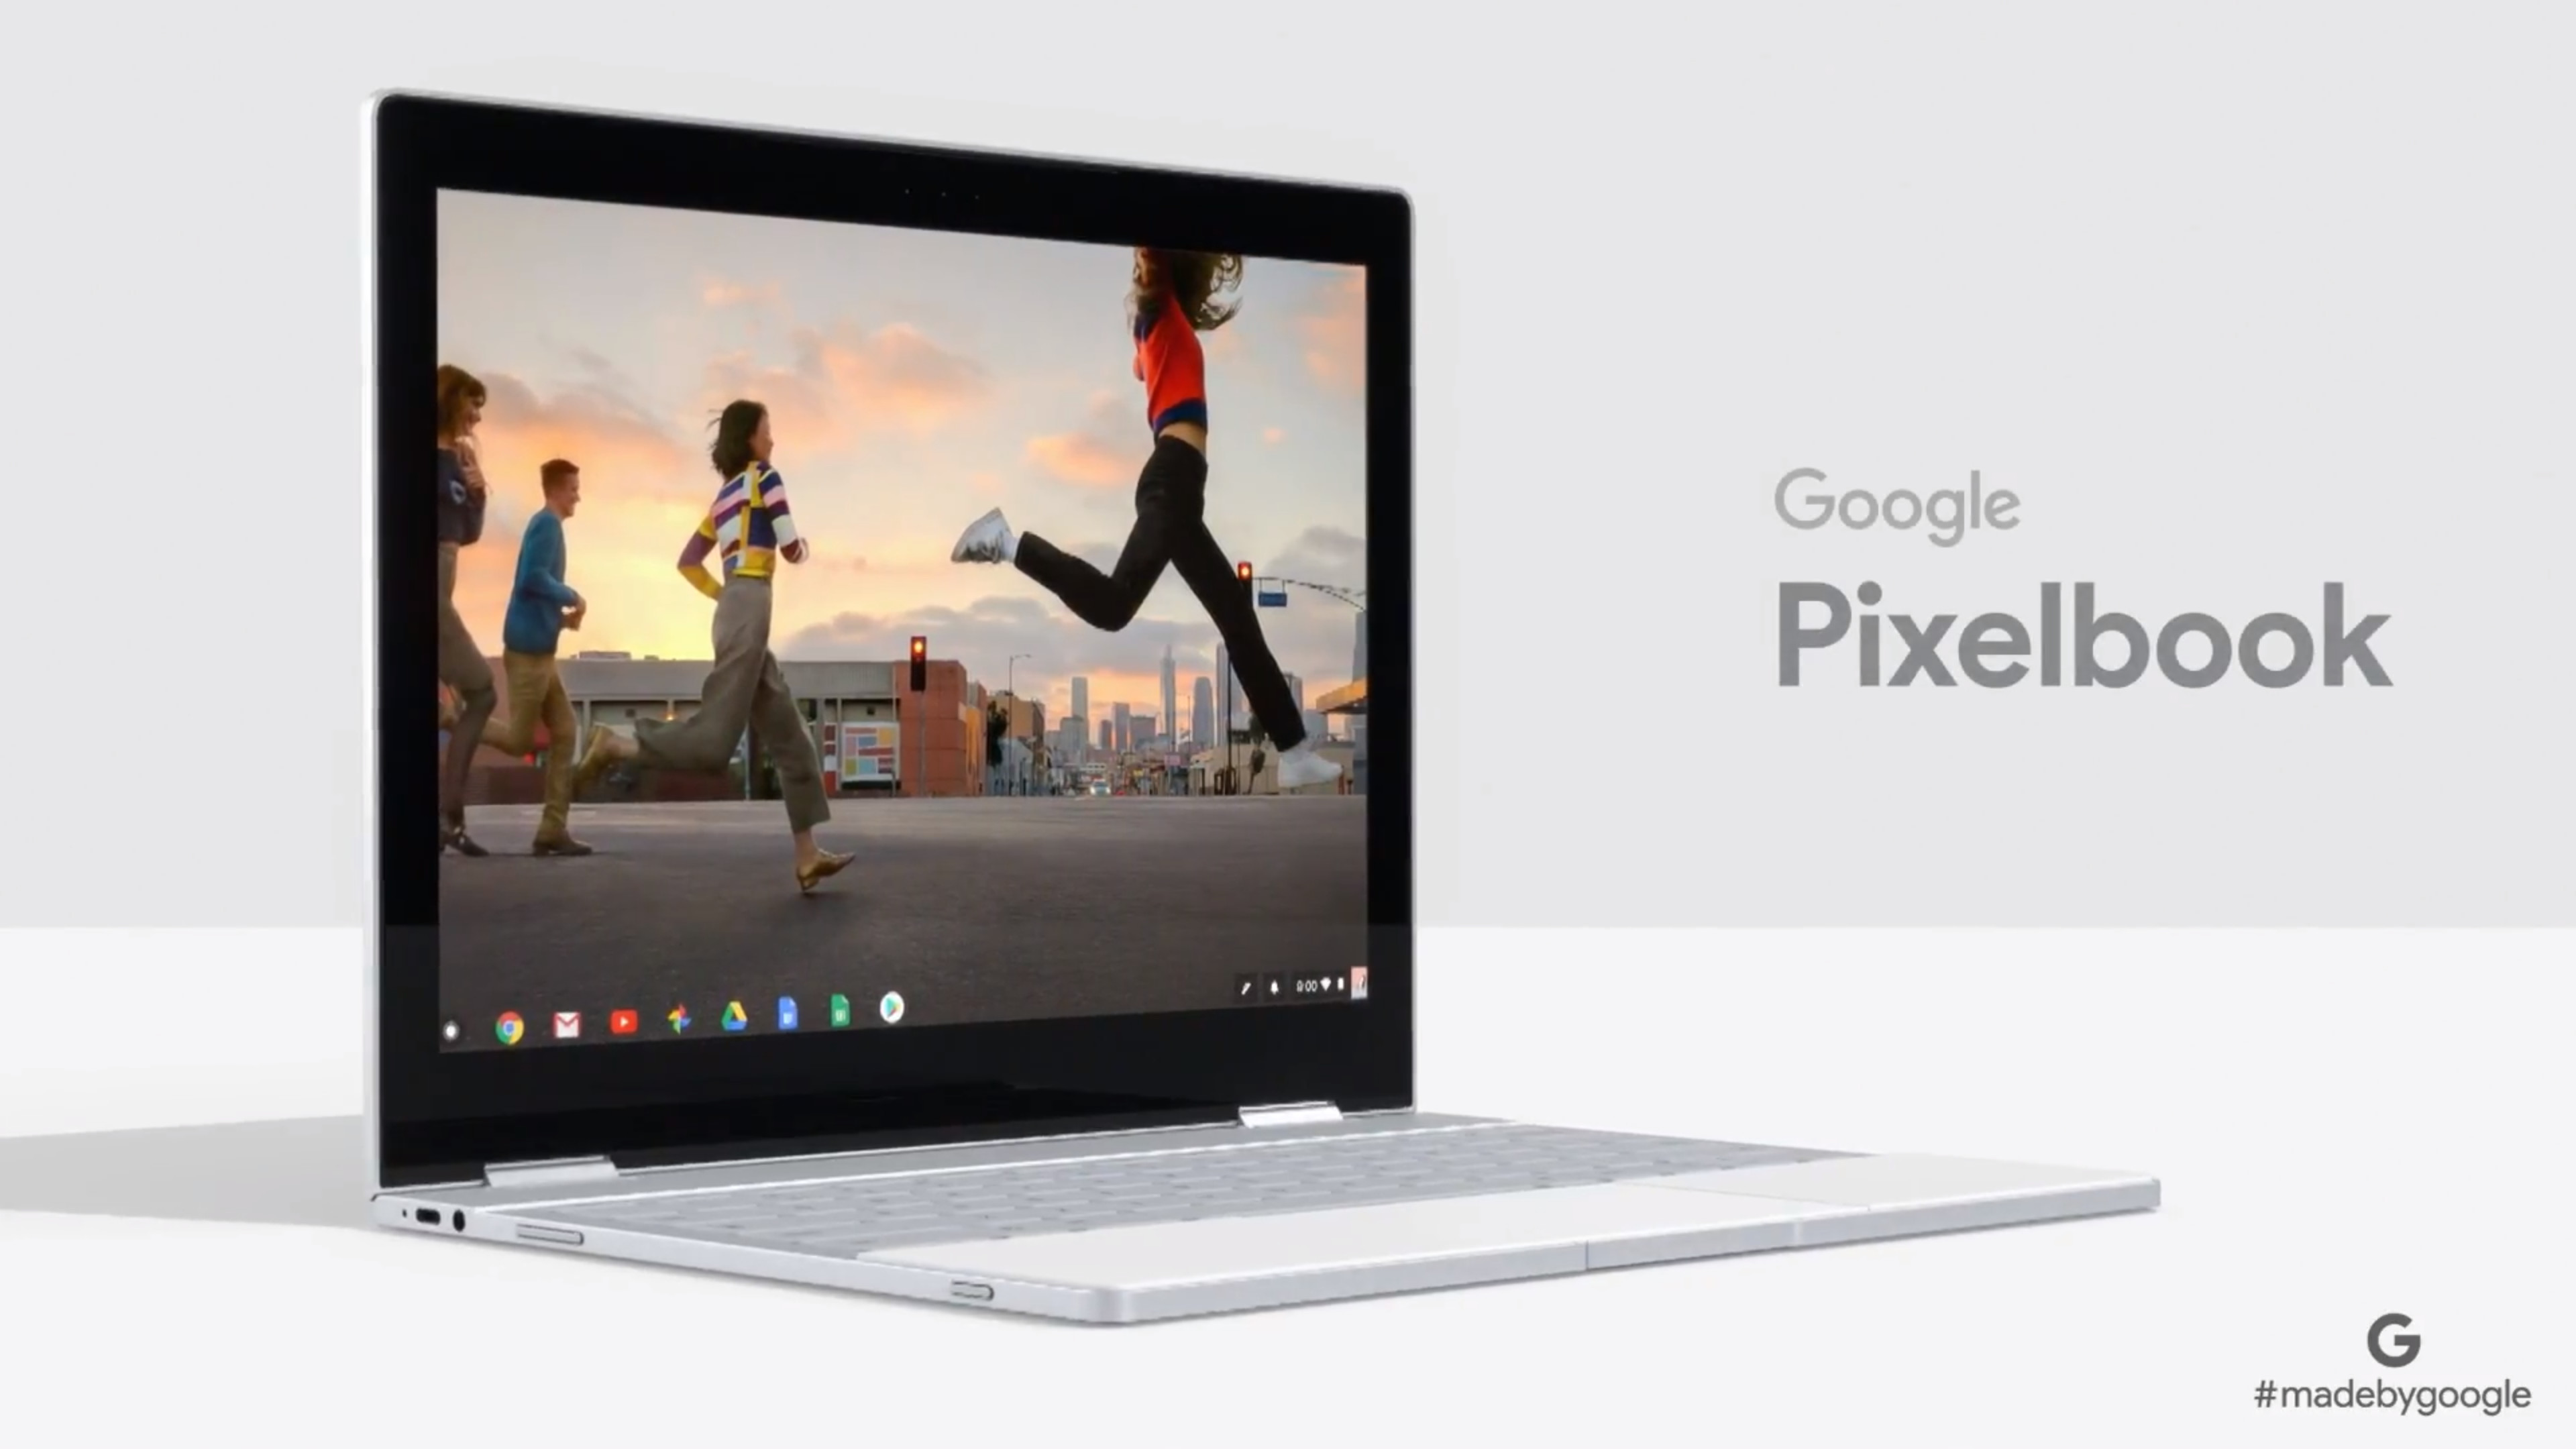 Google testing unreleased Fuchsia OS on the Pixelbook